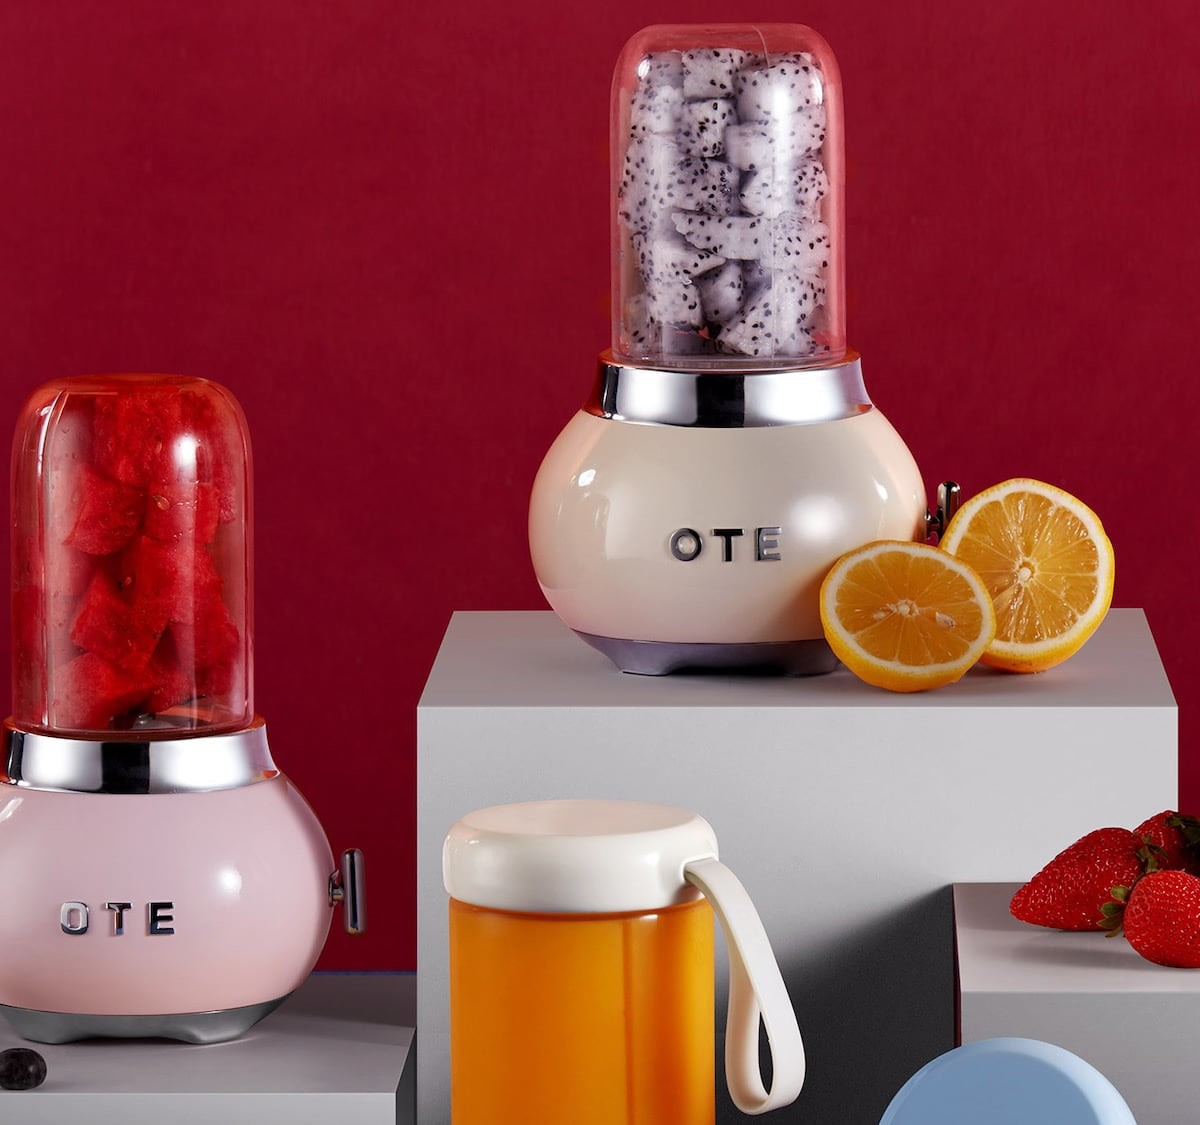 inDare OTE Juicer palm-size blender lets you take your smoothie anywhere